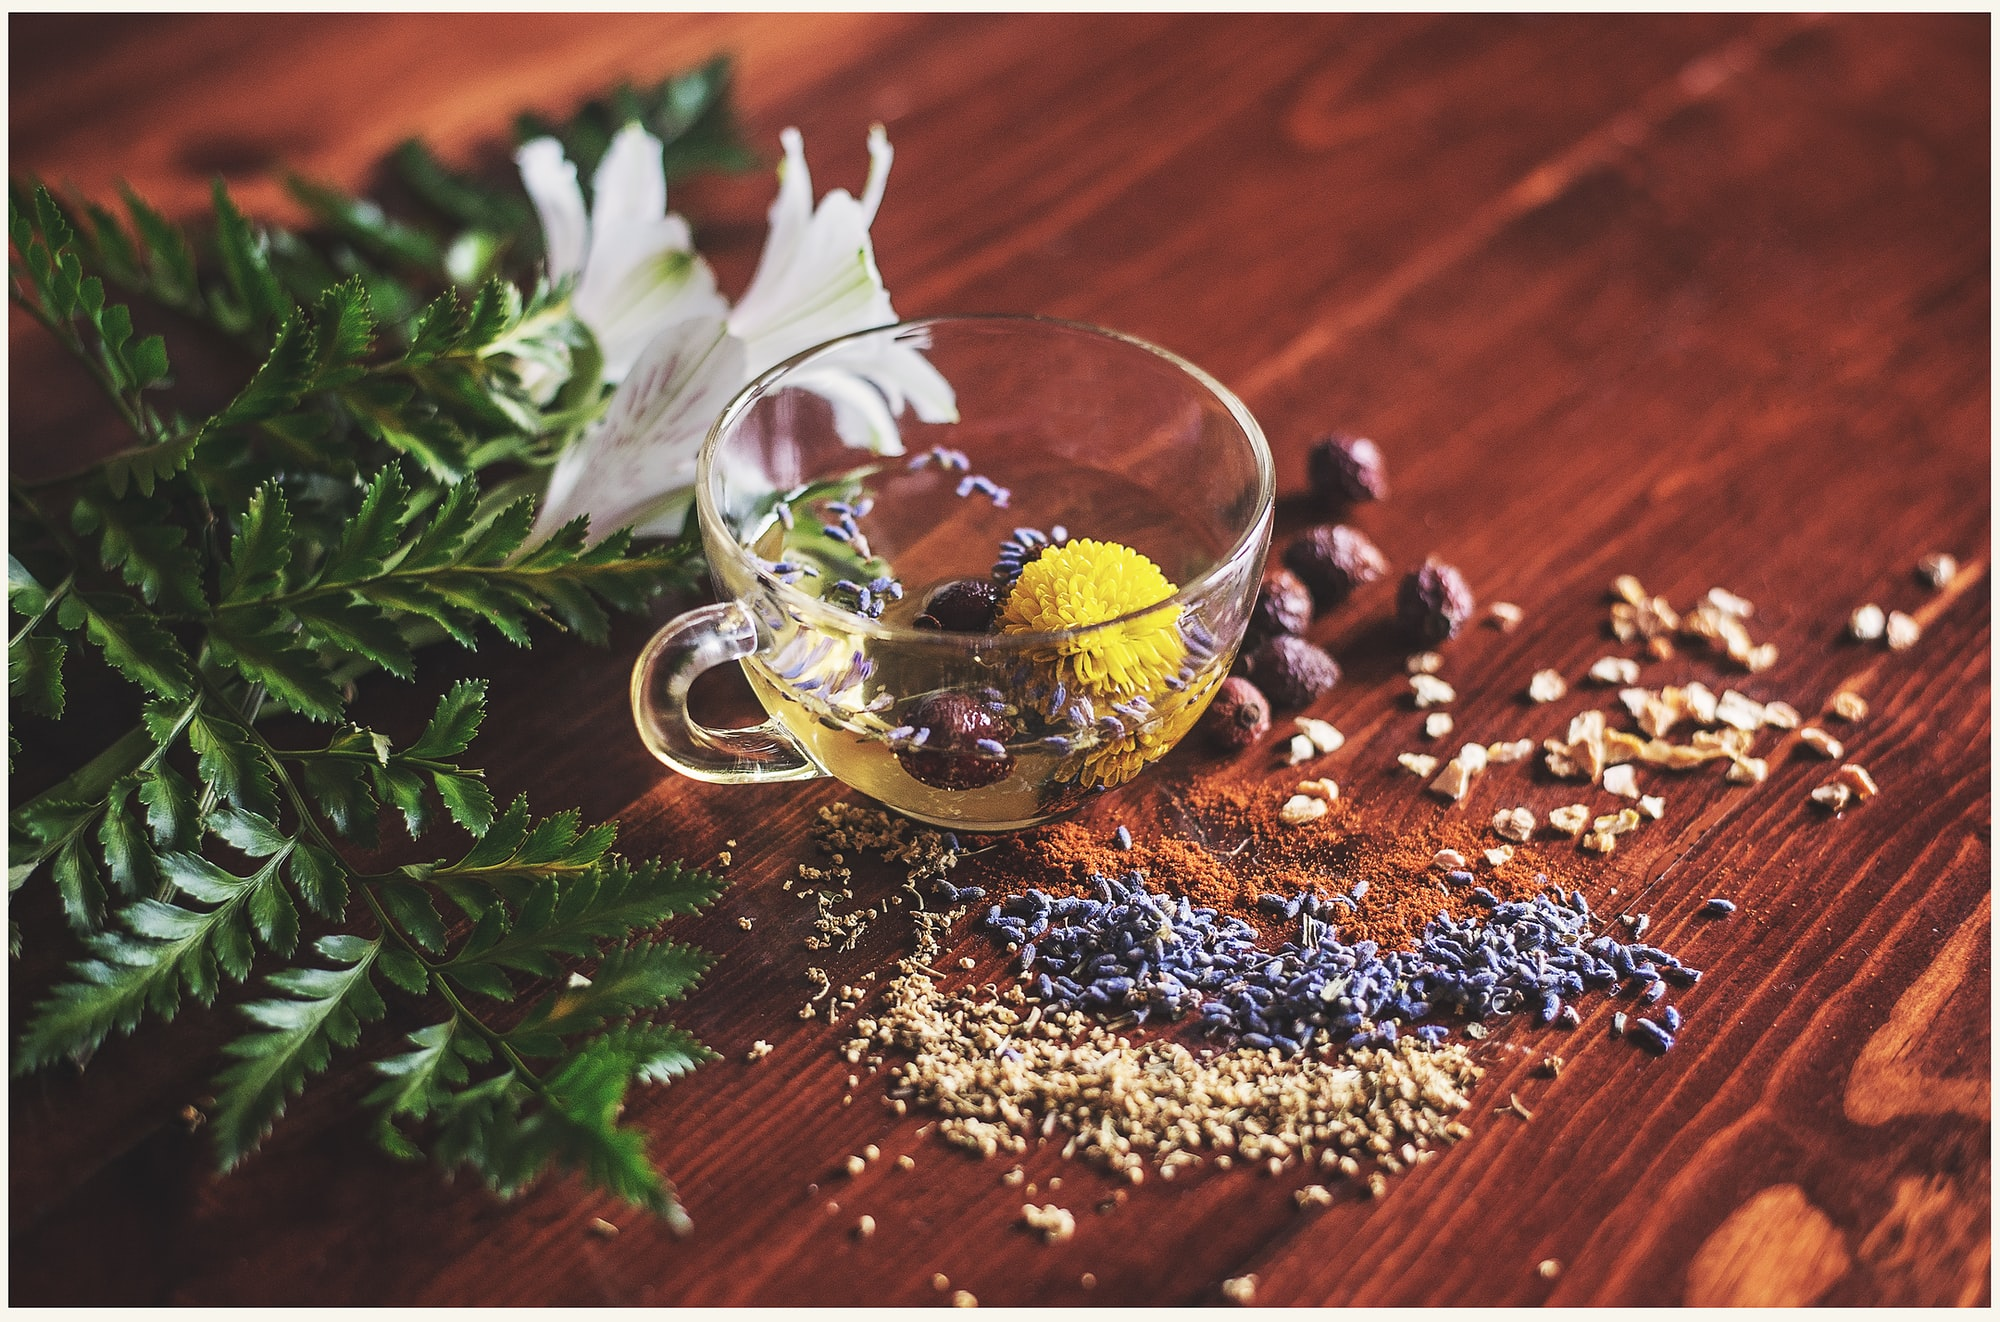 The coffee bean and tea leaf are gluten-free naturally by Lisa Hobbs for Unsplash.